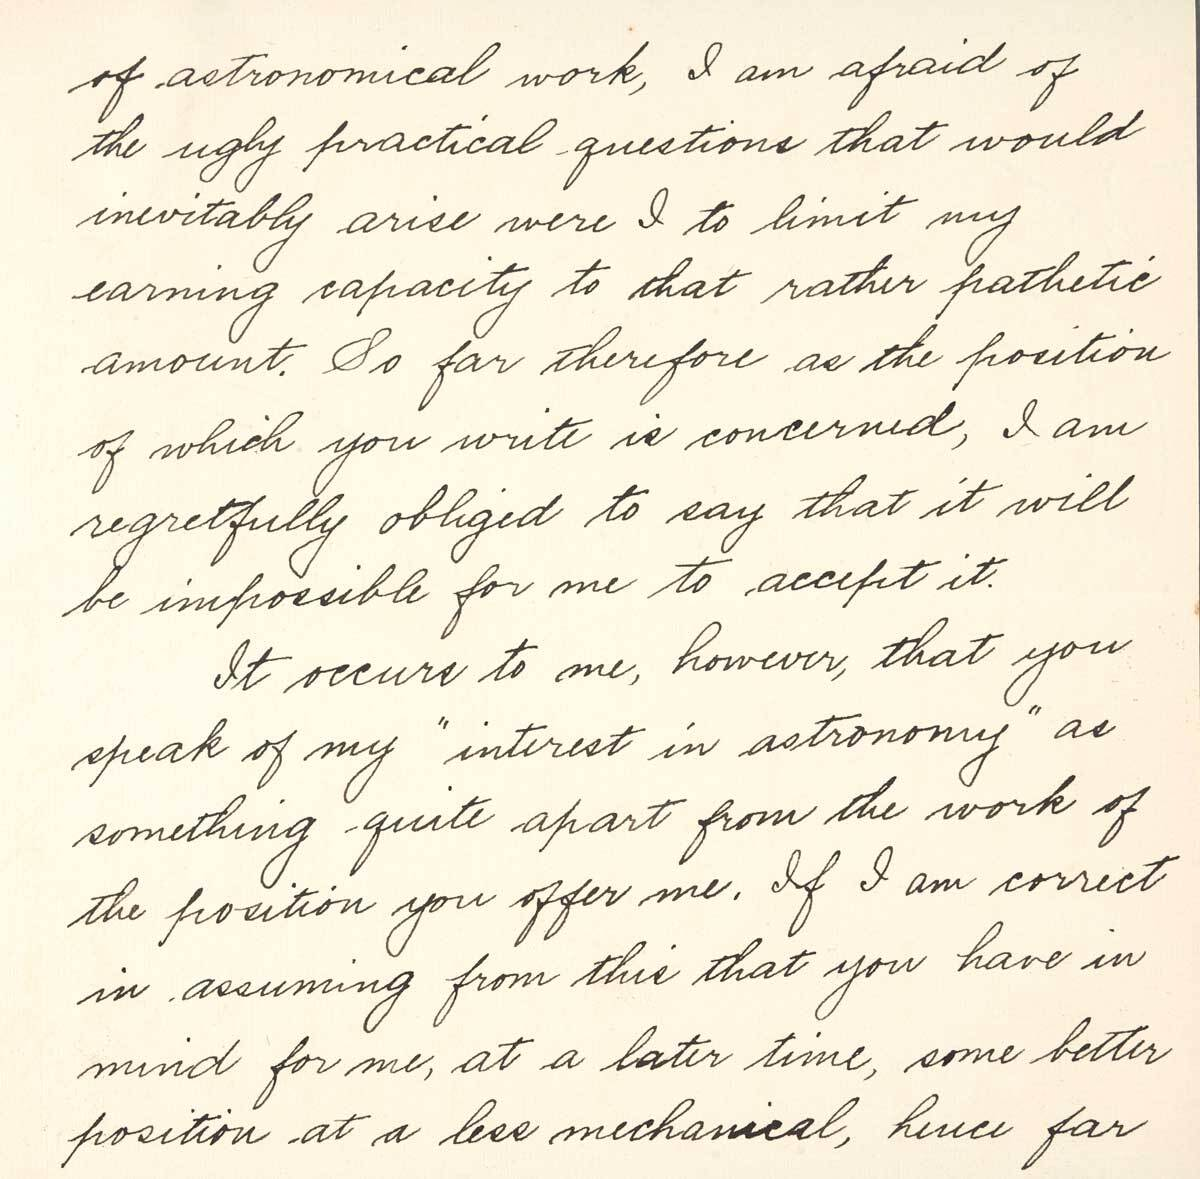 Letter from Betty Trier Berry to F.H. Seares of Mt. Wilson observatory p2 | Image courtesy of the Observatories of the Carnegie Institution for Science Collection at the Huntington Library, San Marino, California